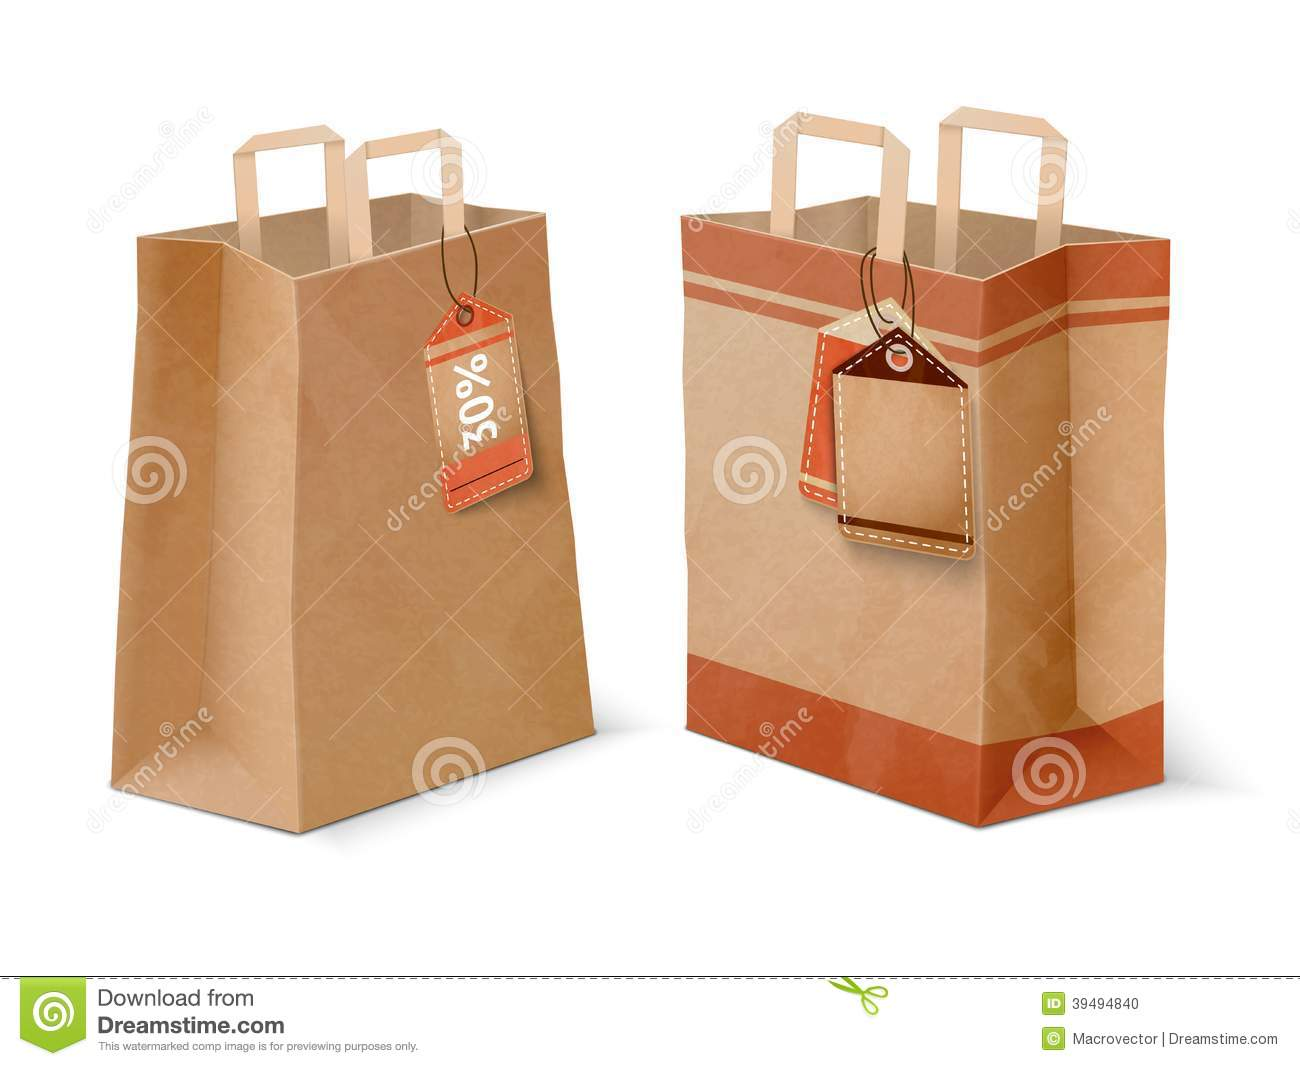 cheap paper bags for sale Purchase in bulk and start saving on small and large wholesale paper gift bags today at dollardays wholesale gift wrap paper, gifts cards, gifts bags, gifts boxes, stationery supplies and more.